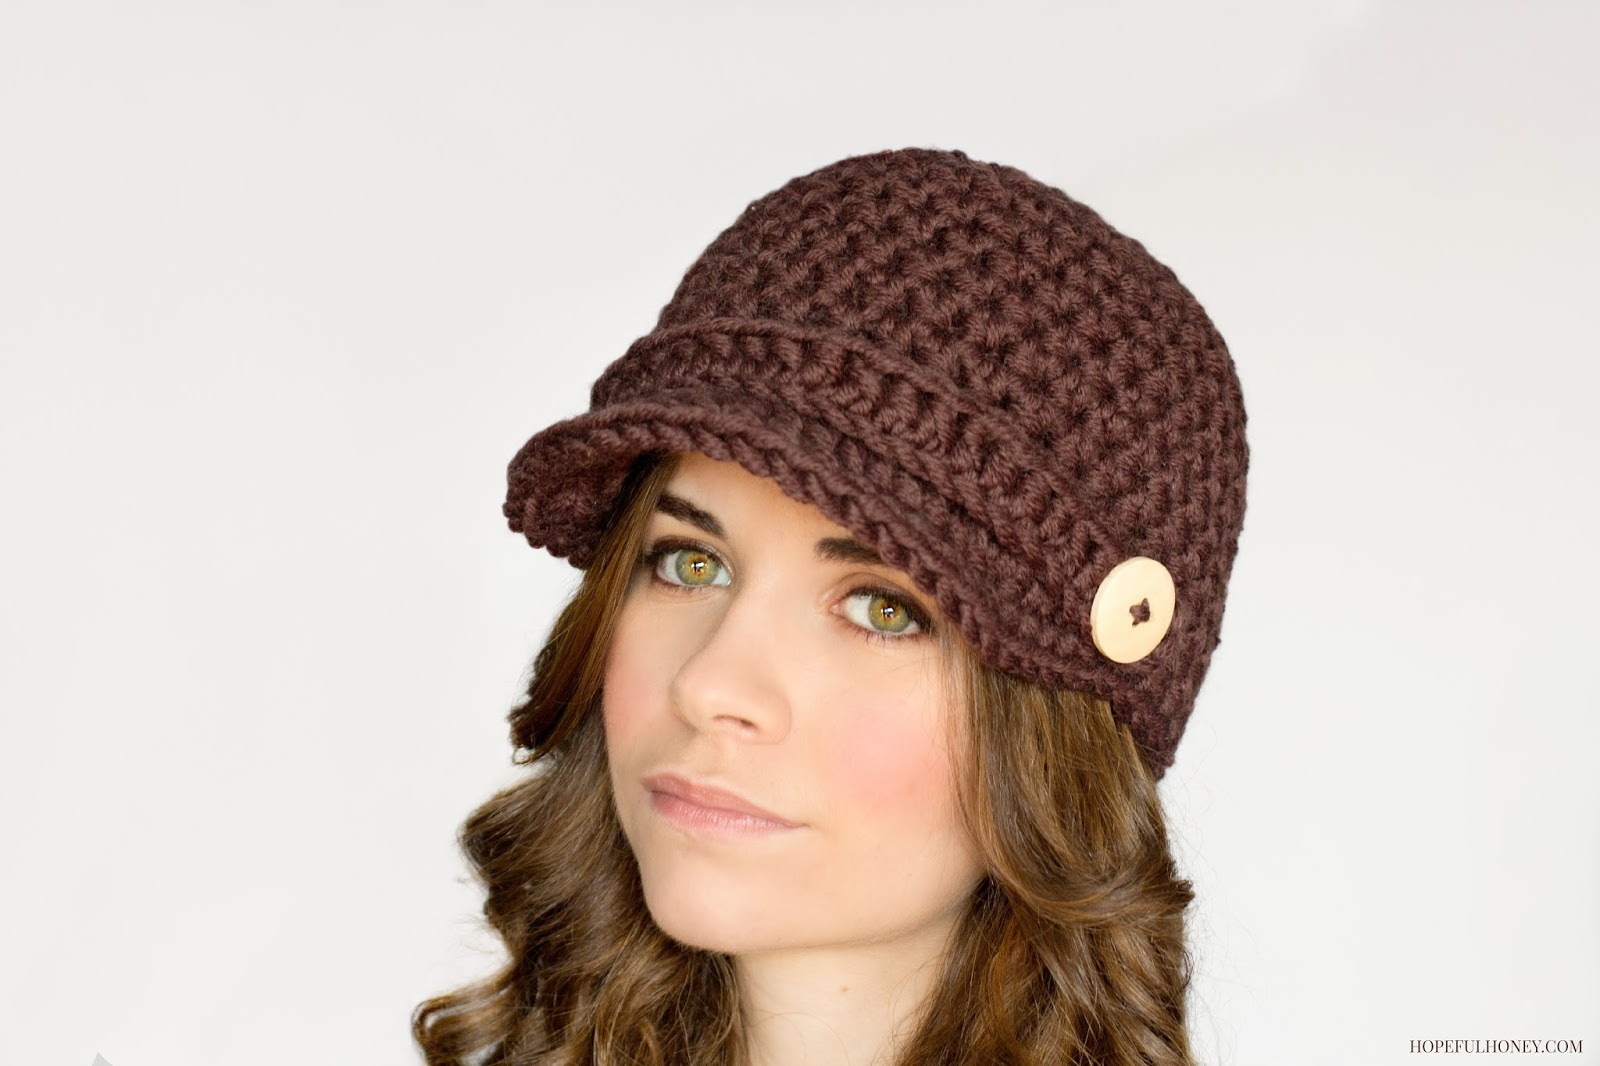 Free Crochet Pattern Toddler Newsboy Cap : Hopeful Honey Craft, Crochet, Create: July 2014